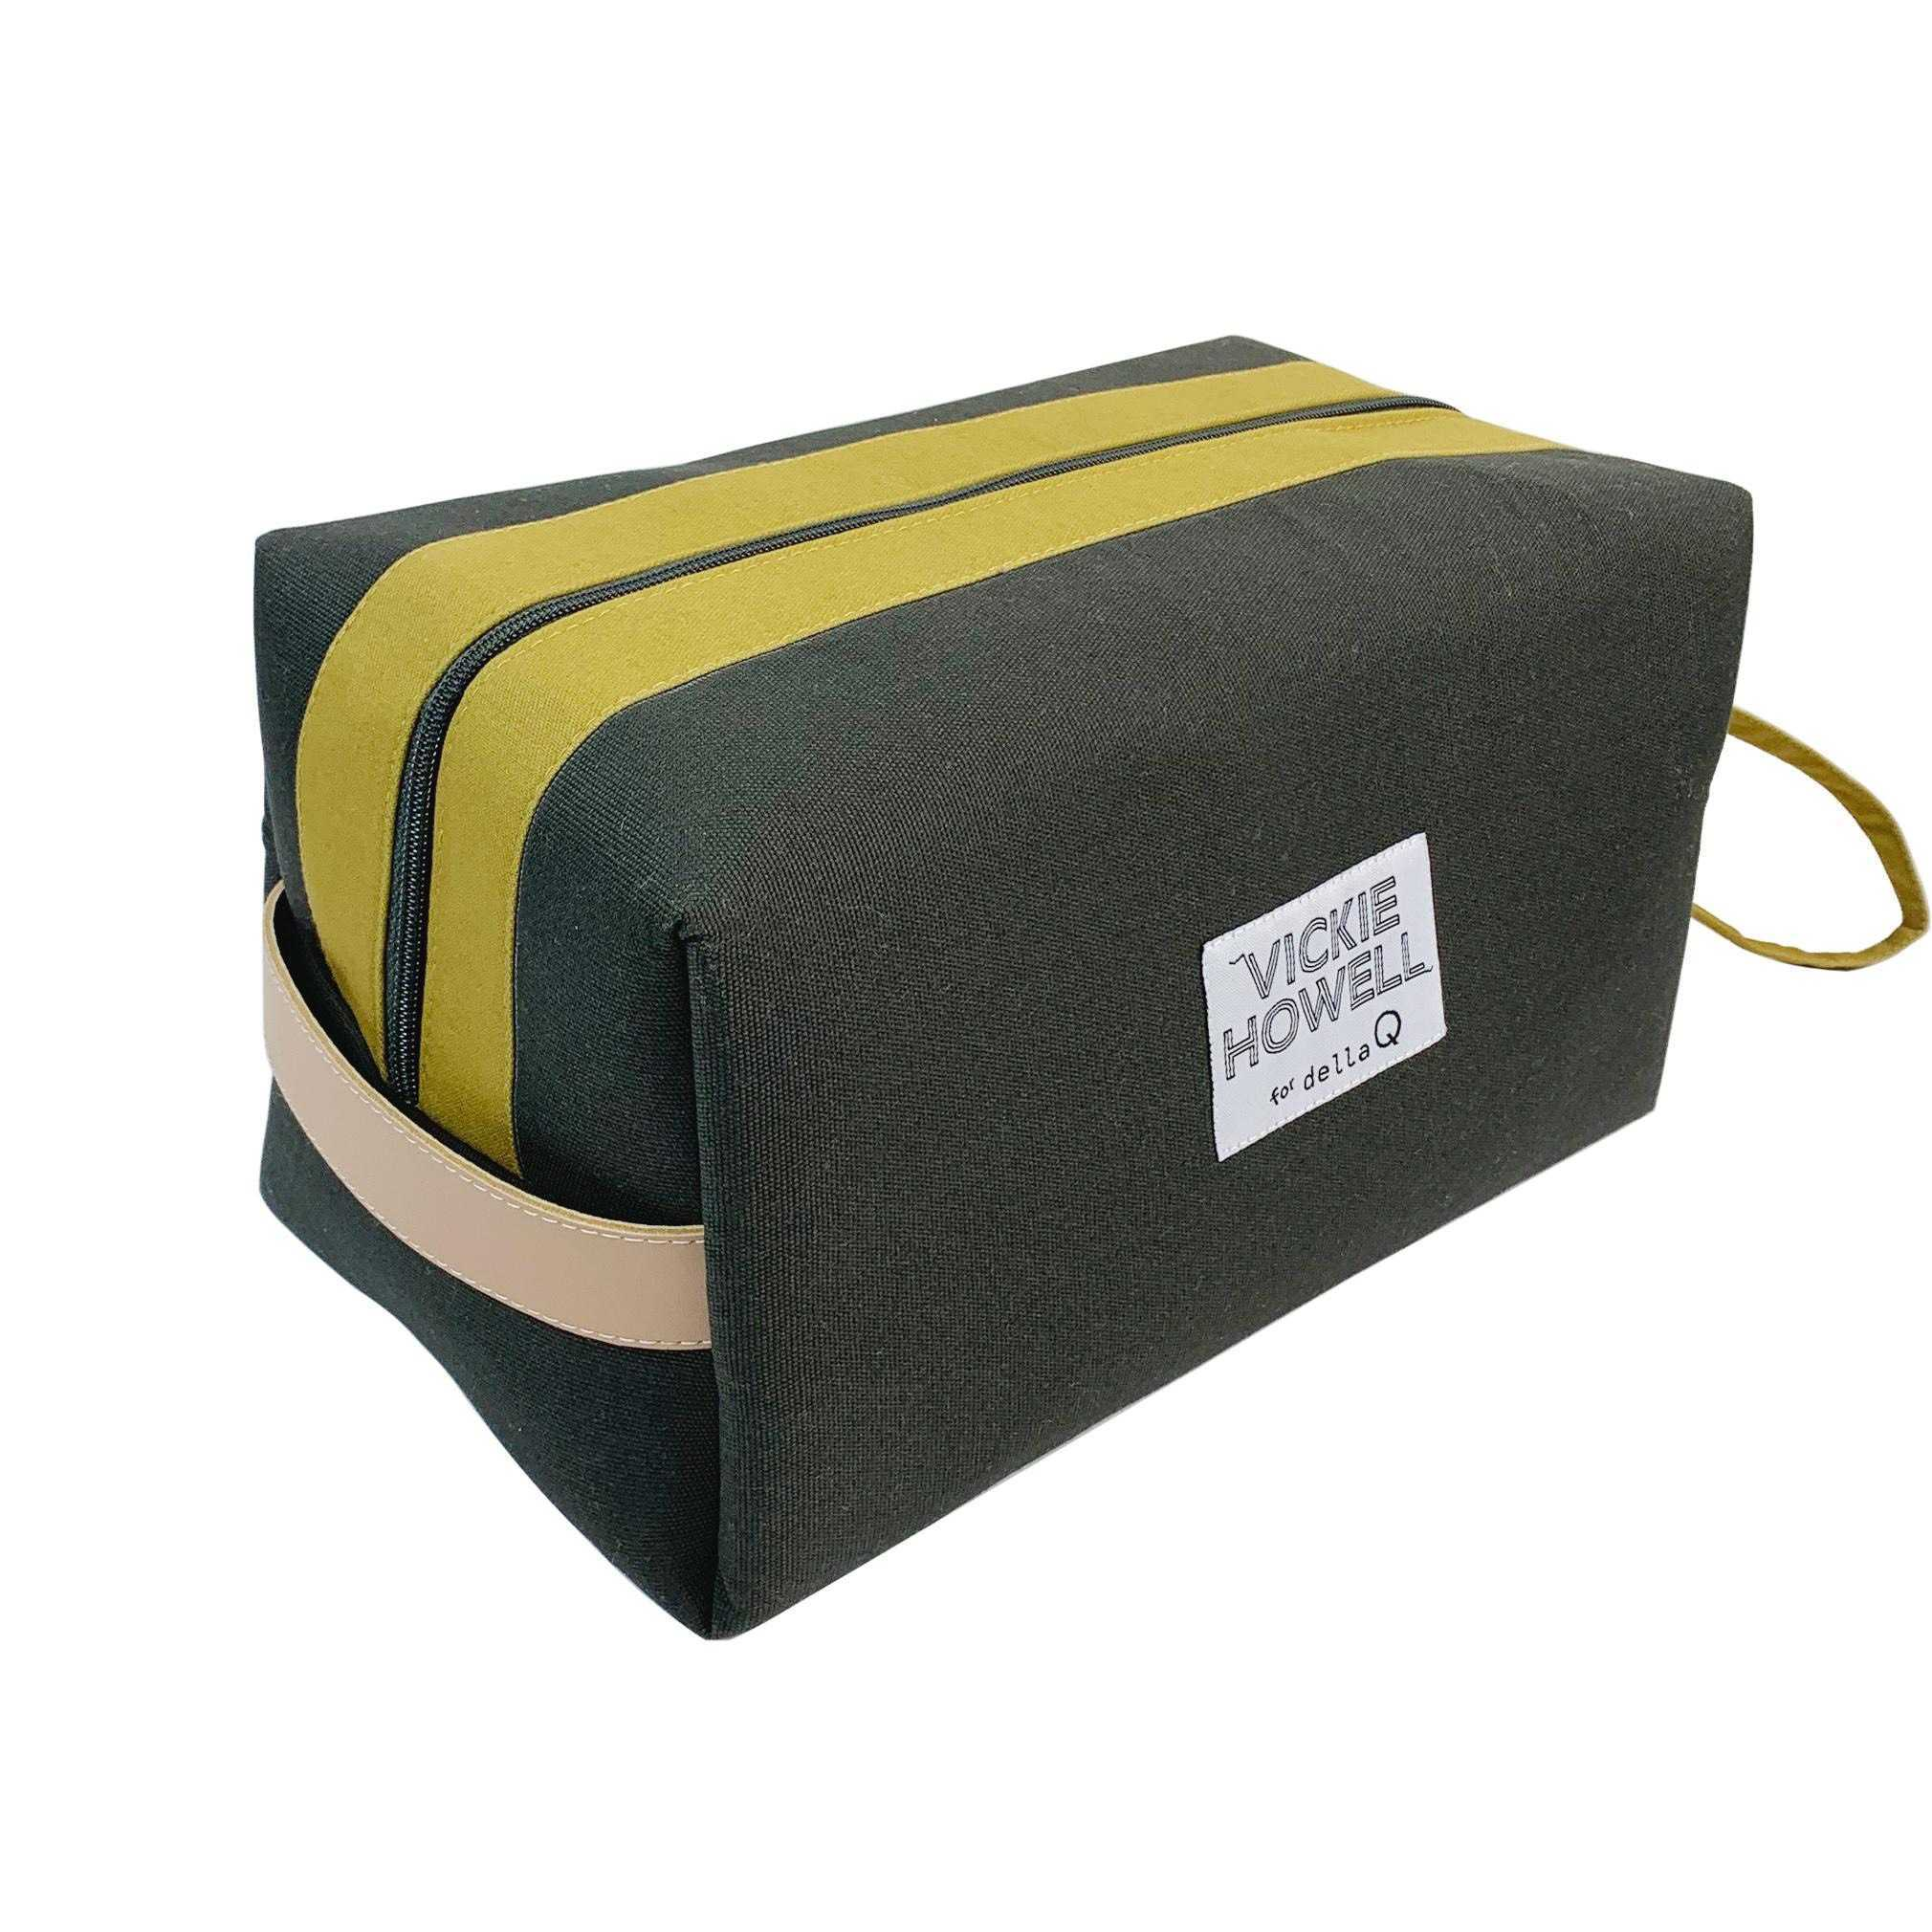 Fella Q Dopp Kit